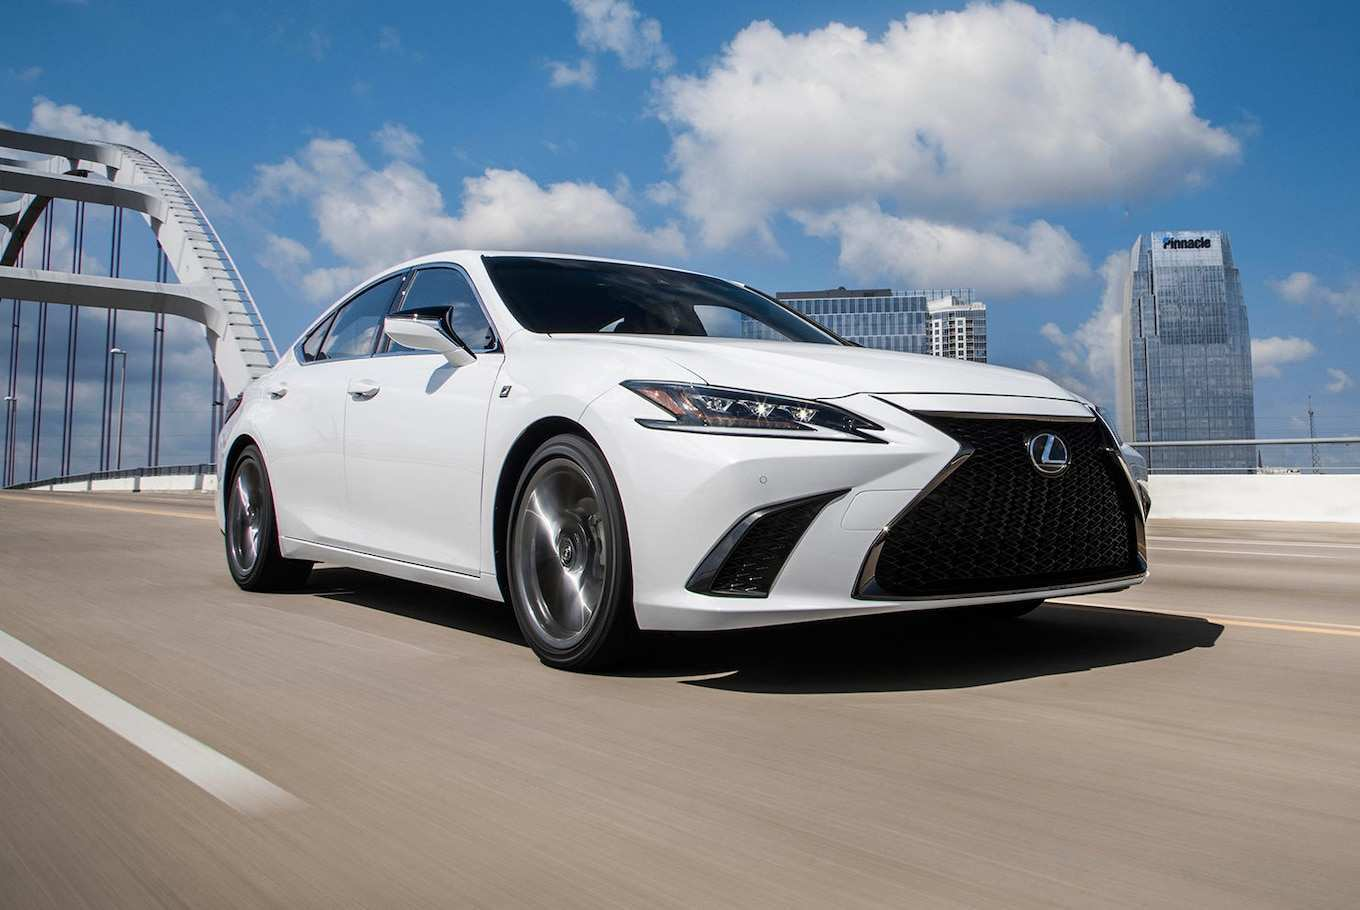 46 Gallery of 2019 Lexus Is350 F Sport Exterior by 2019 Lexus Is350 F Sport